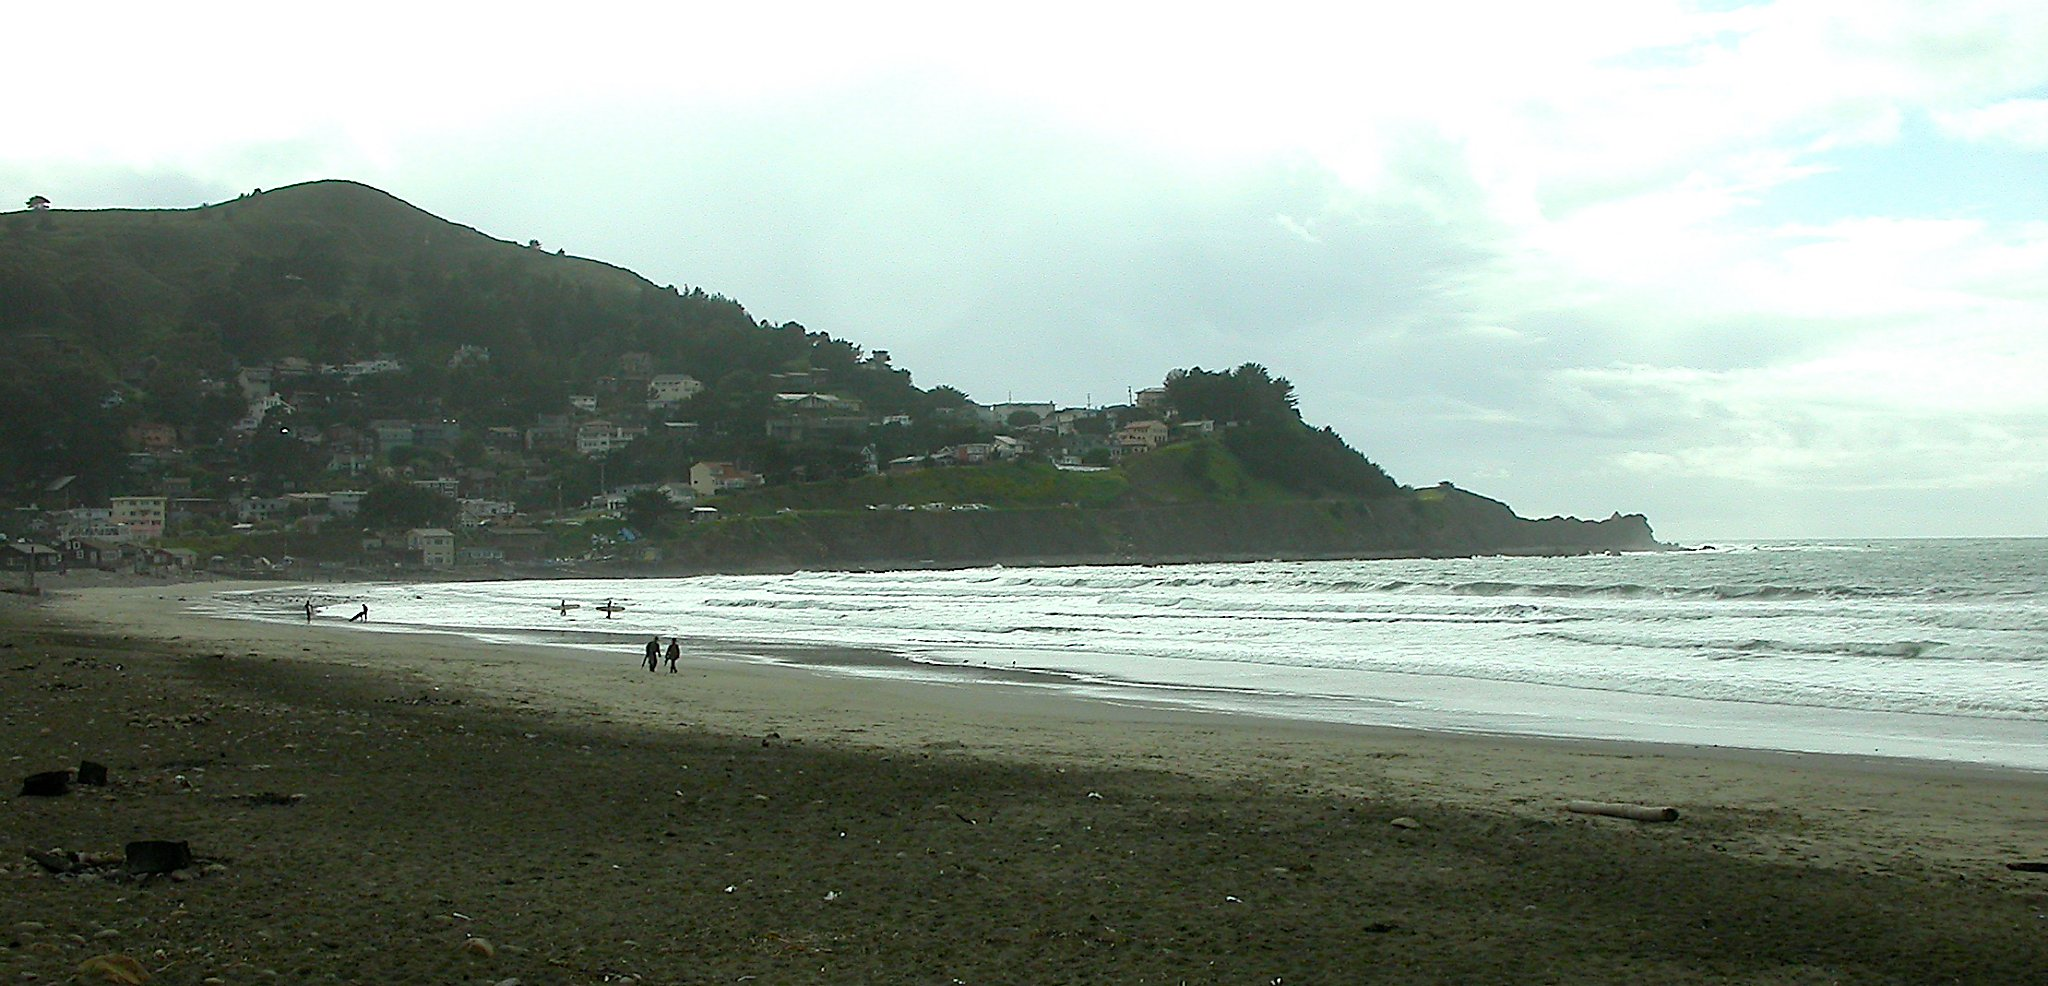 Sunday Getaway to 'Taco Bell Beach' in Pacifica